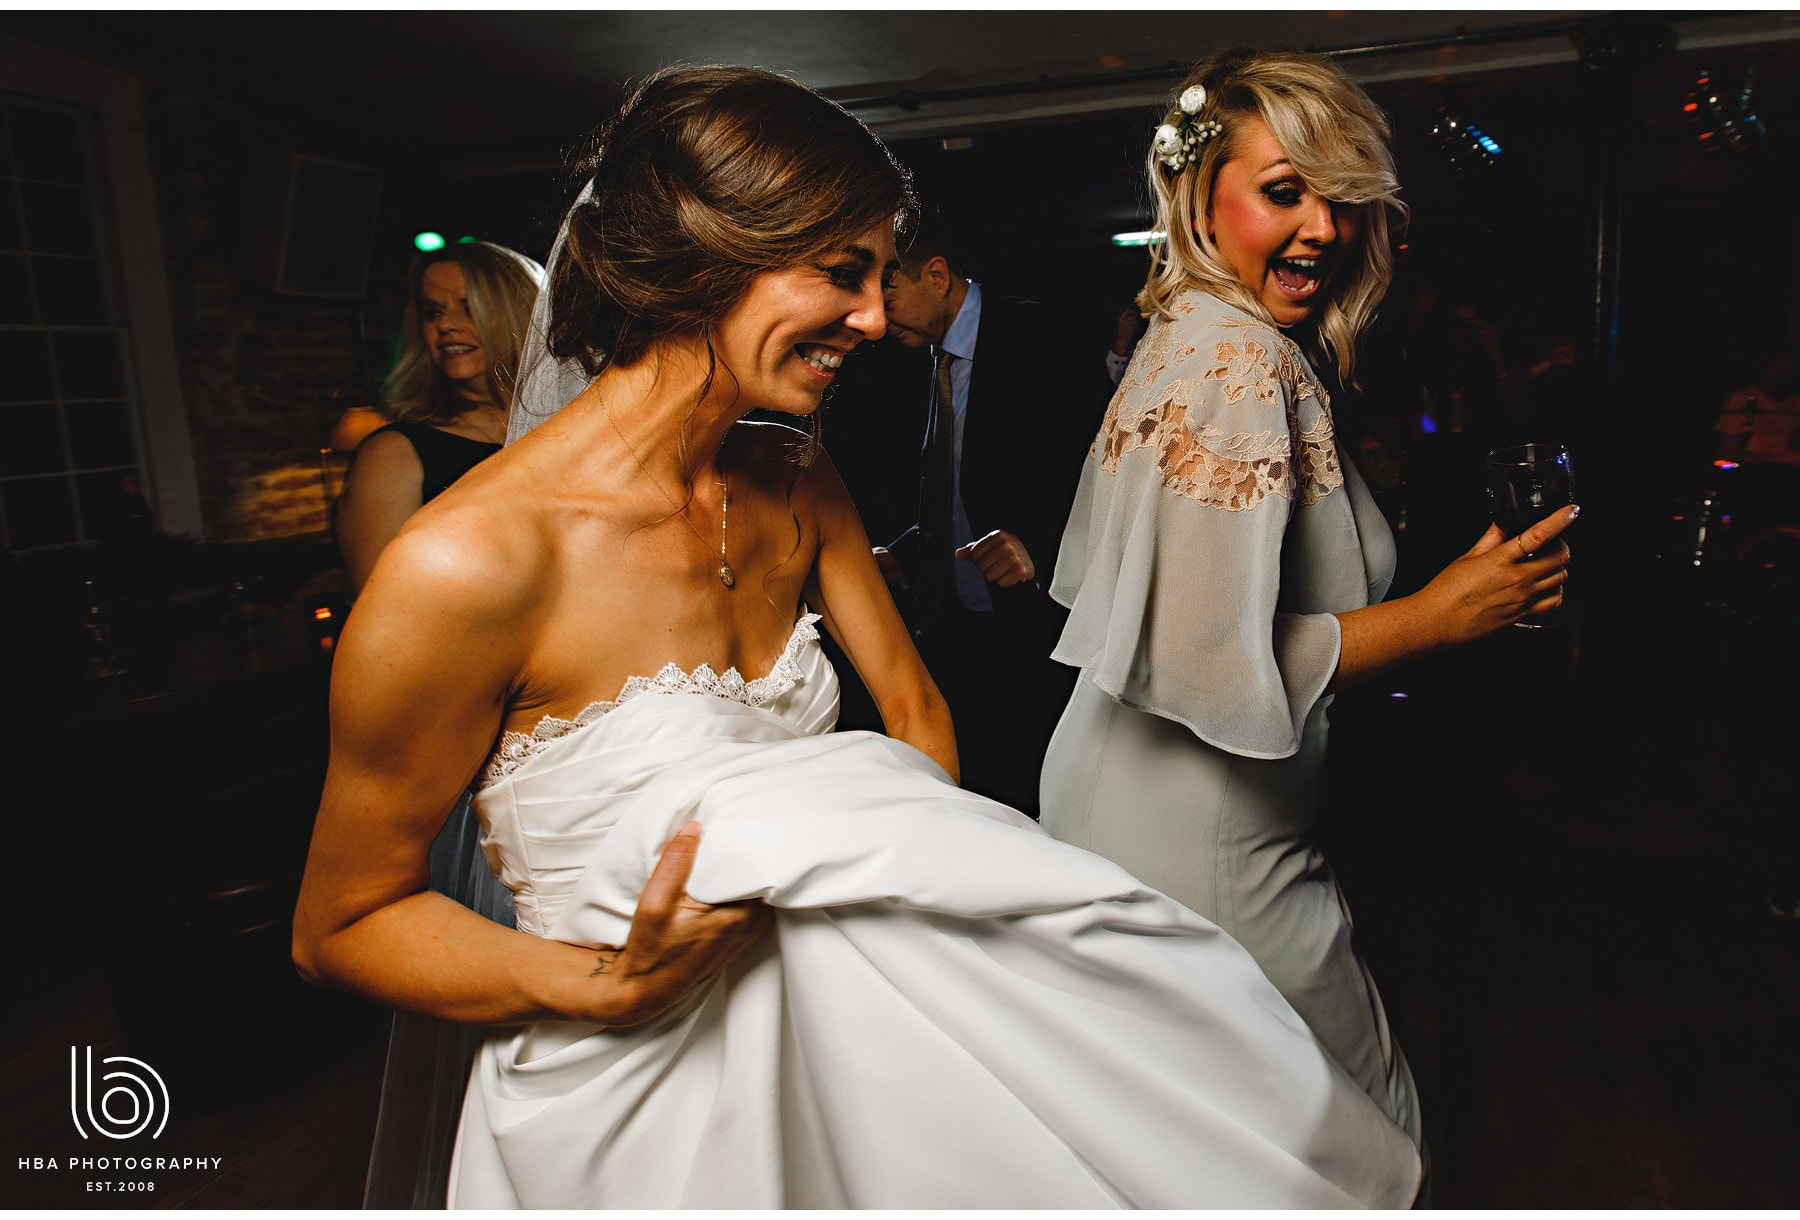 the bride dancing with her bridesmaids